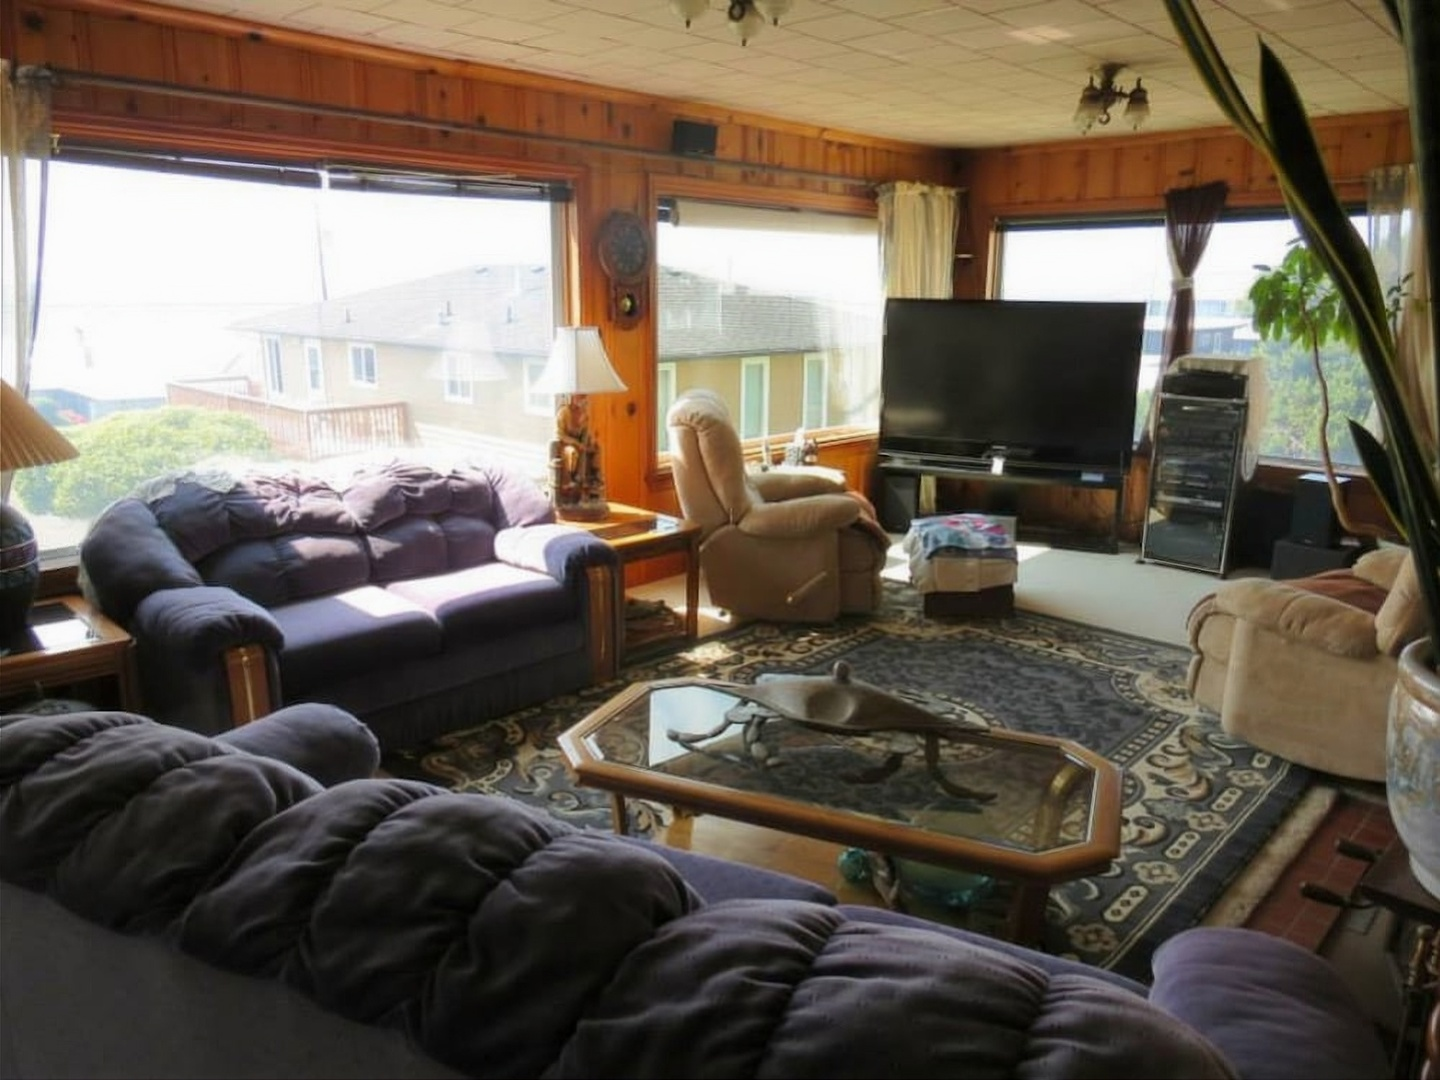 A living room filled with furniture and a large window at Brey House Ocean View Bed and Breakfast.